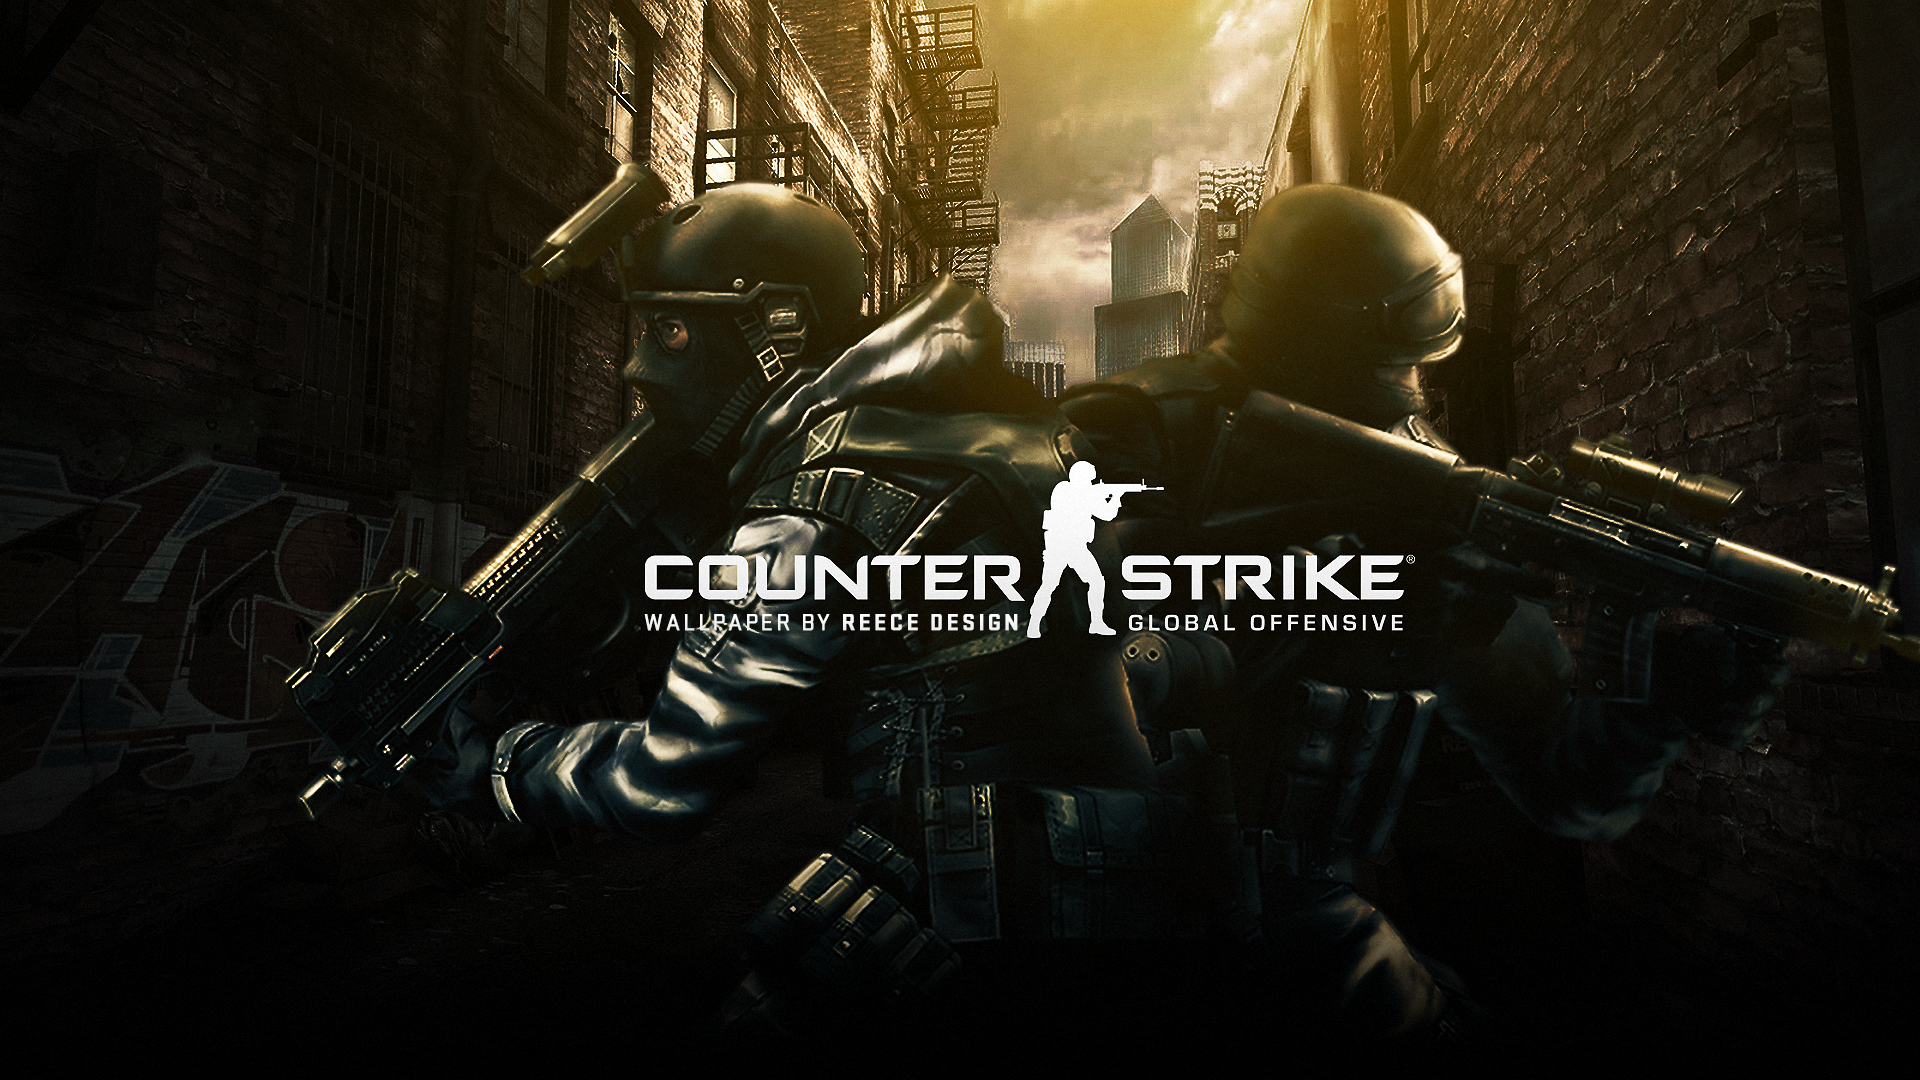 CS:GO - WALLPAPERS 1920x1080 by plesnior on DeviantArt